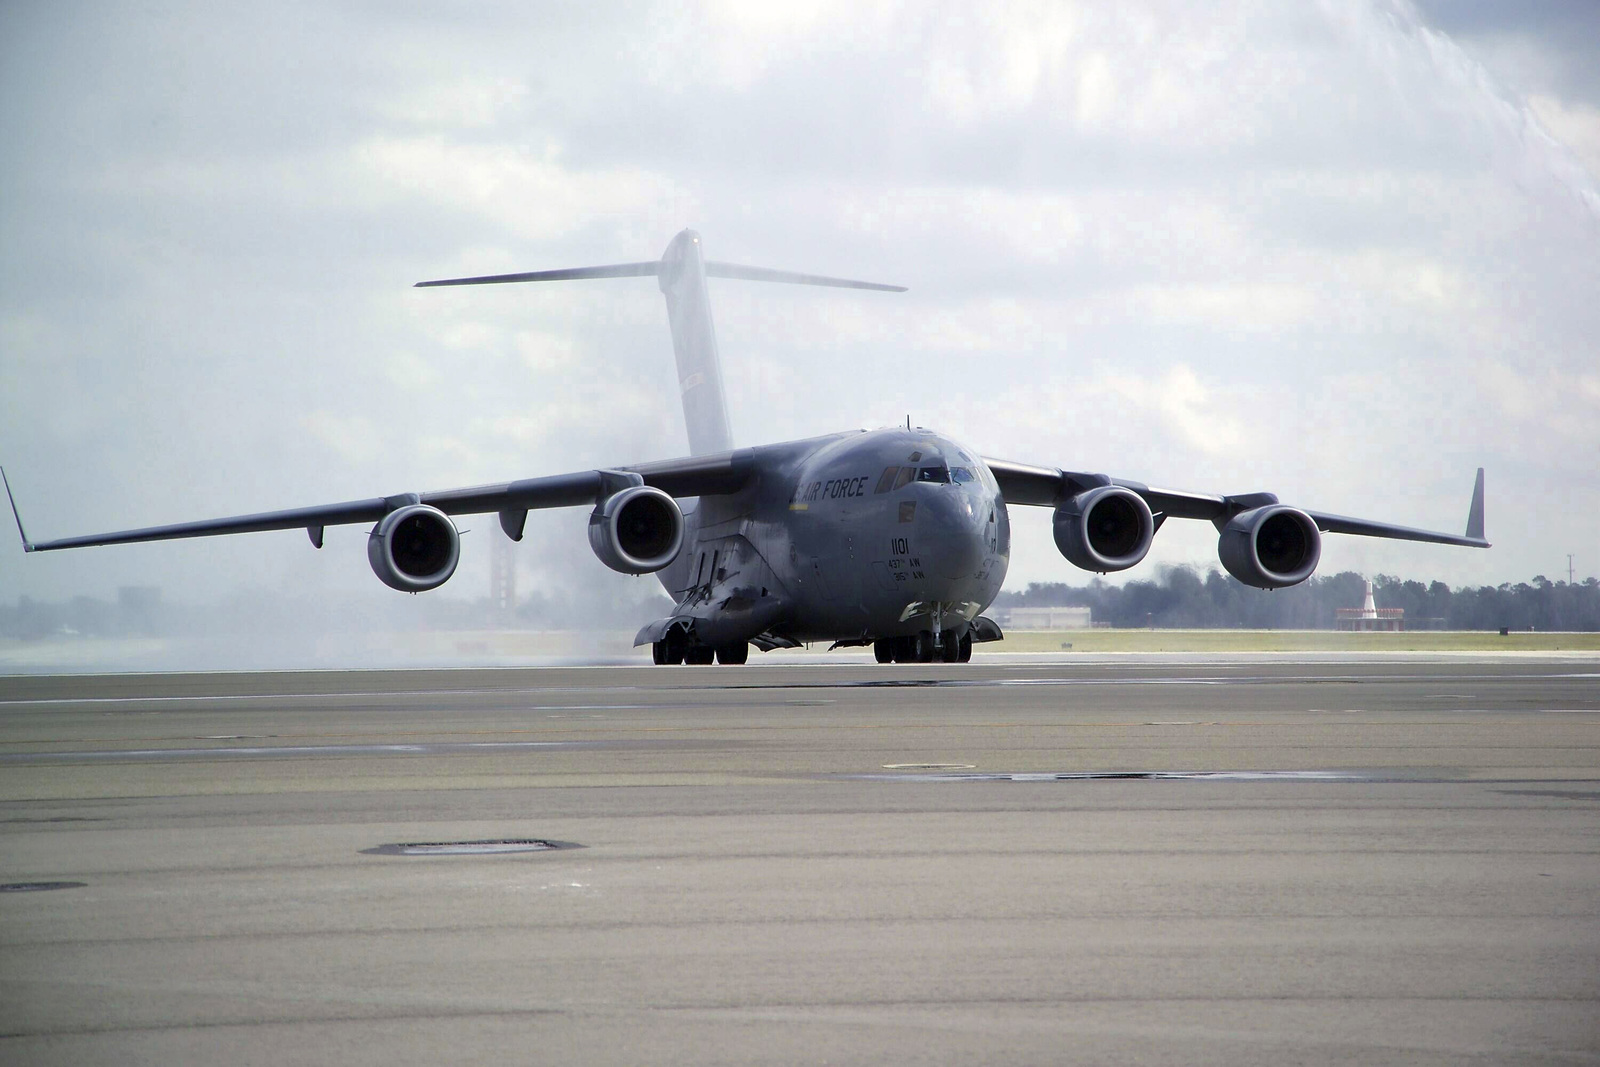 U.S. Air Force C-17 Globemaster III aircraft, 437th Airlift Wing (AW), Charleston Air Force Base, S.C., piloted by Brig. GEN. (select) Brooks Bash, Commander, 437th AW, taxis in from the landing strip on Oct. 15, 2004.  General Bash is performing his last flight, also known as a'fini-flight,'as the commander of the airlift wing.'Fini-flights'are a time-honored custom in the Air Force.  Most often, the pilot is'hosed down'by his/her peers just after the final flight. (U.S. Air Force photo by TECH. SGT. Richard T. Kaminsky) (Released)